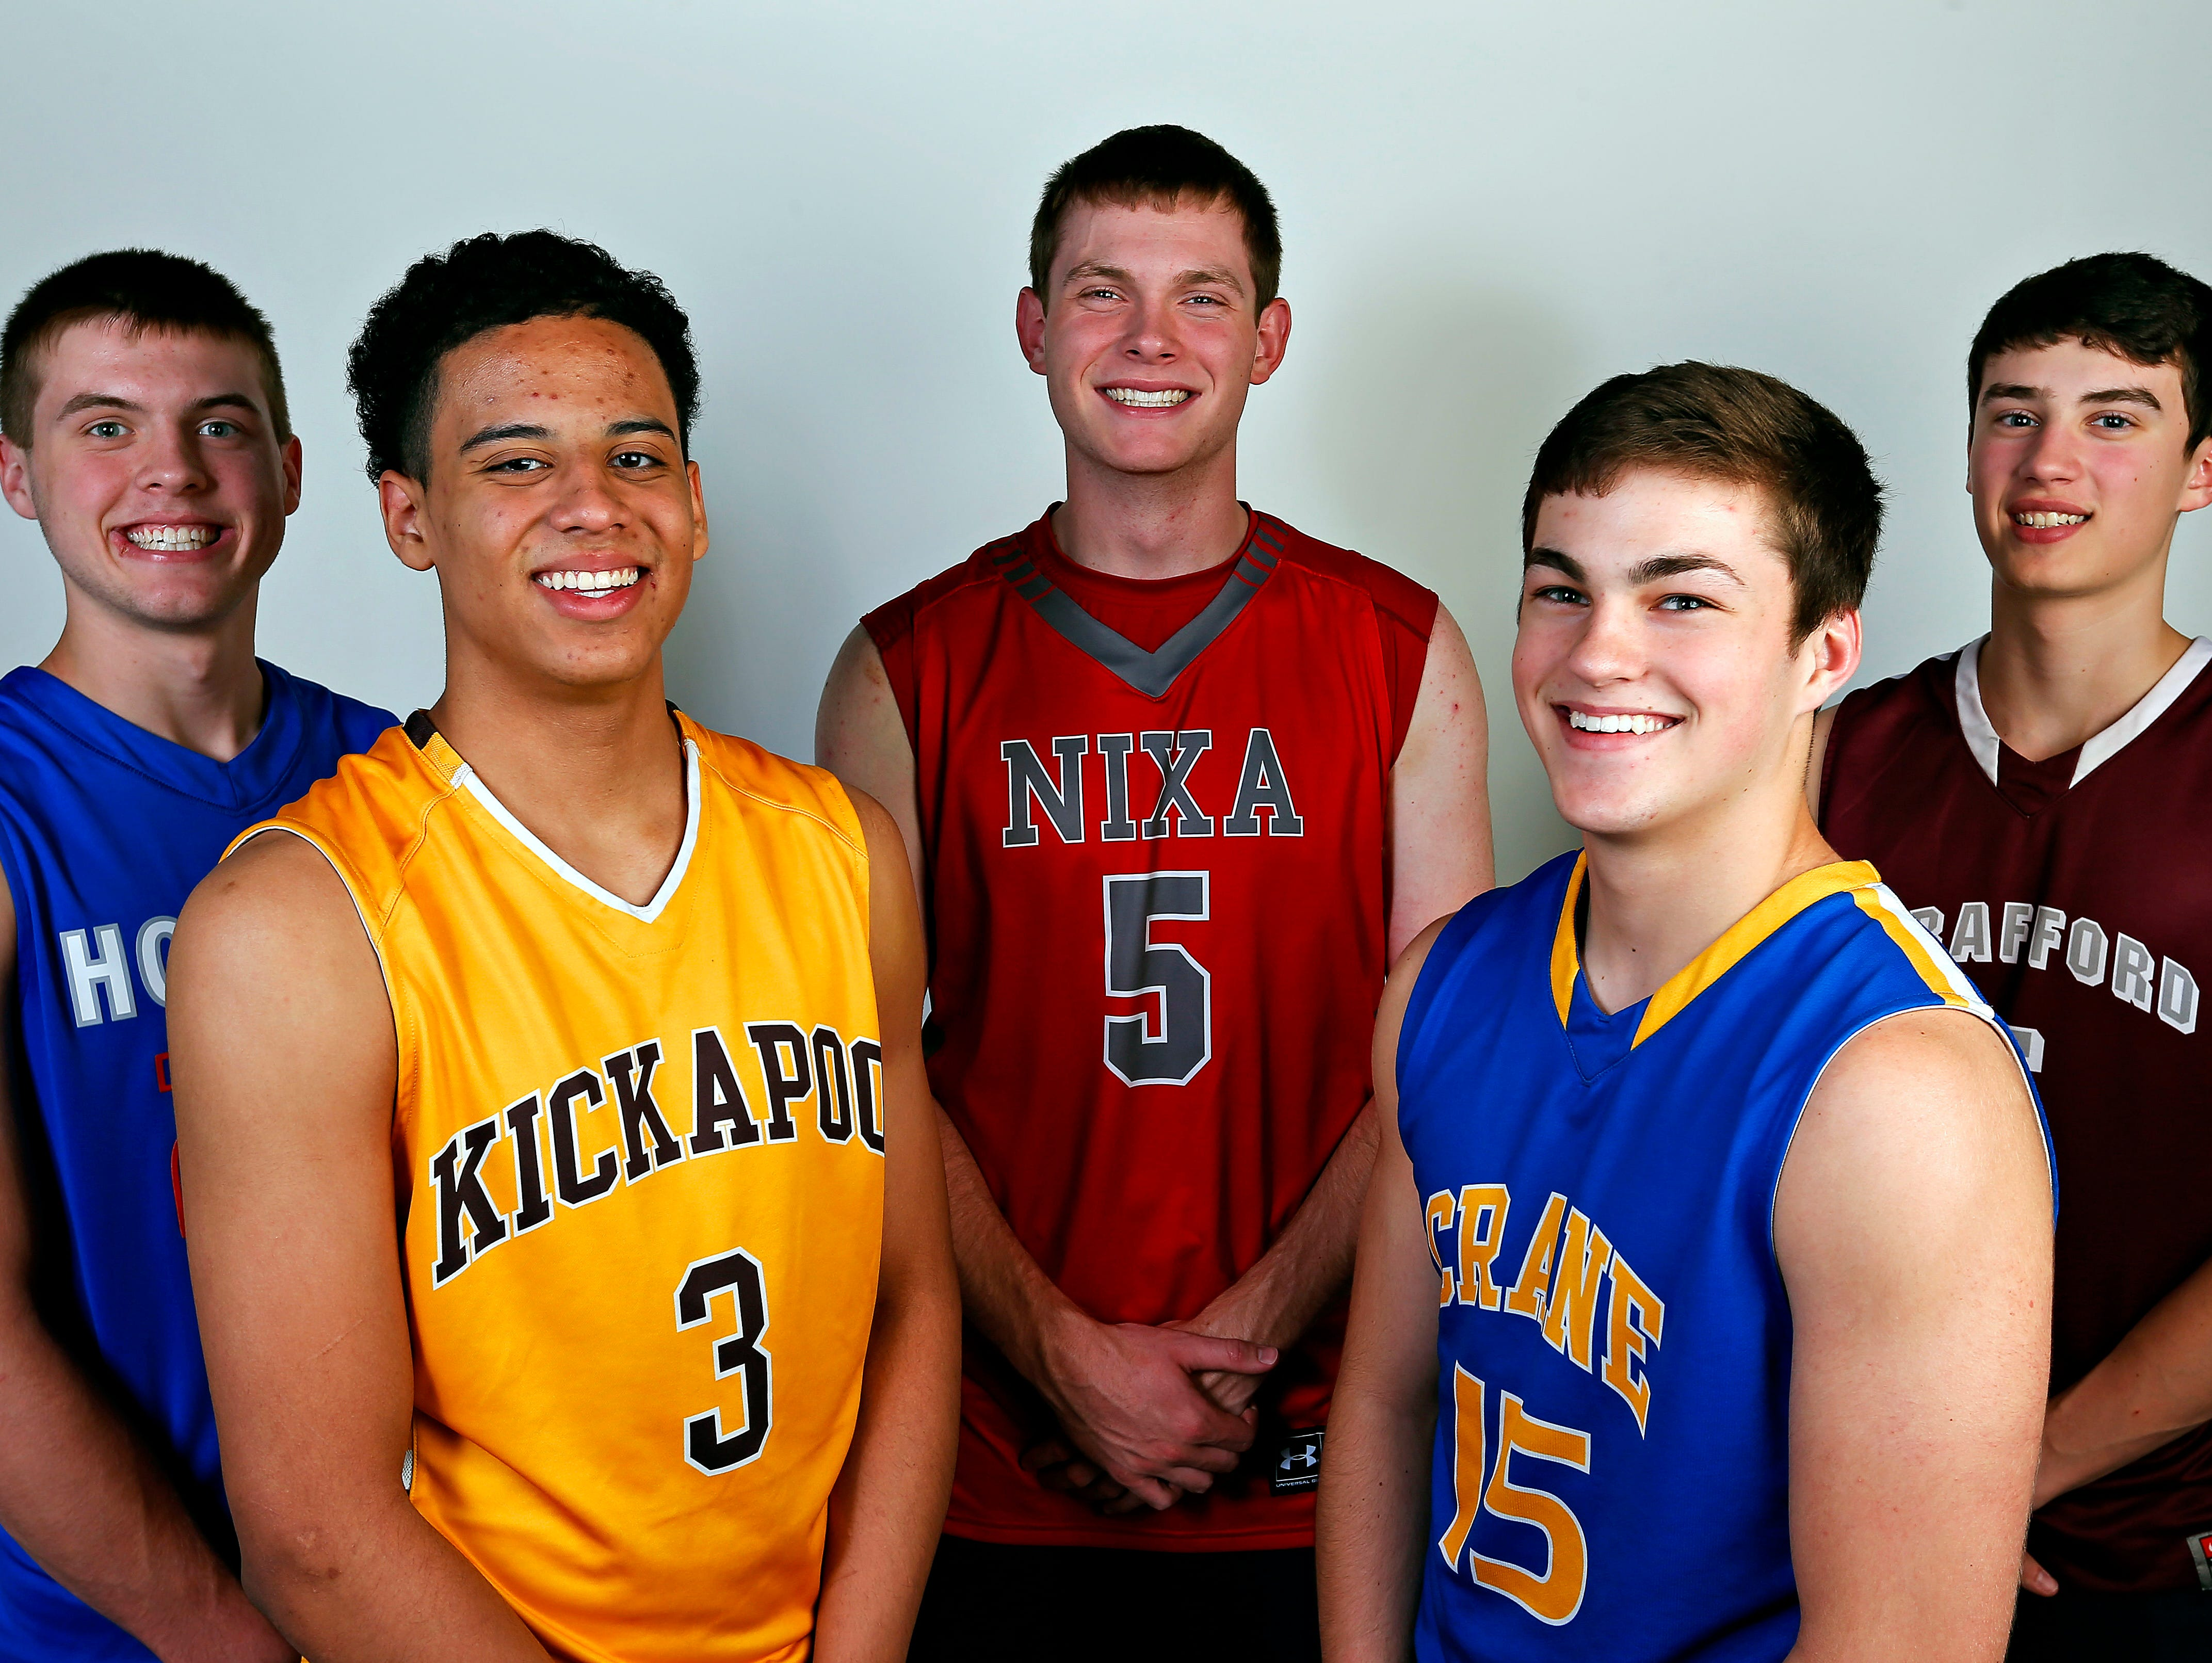 All Ozarks basketball team members (from left) Brady Petry of Hillcrest, Tyson Batiste of Kickapoo, Jacob Ruder of Nixa, Zach Chastain of Crane and Grant Boswell of Strafford at the News-Leader portrait studio in Springfield on Wednesday.